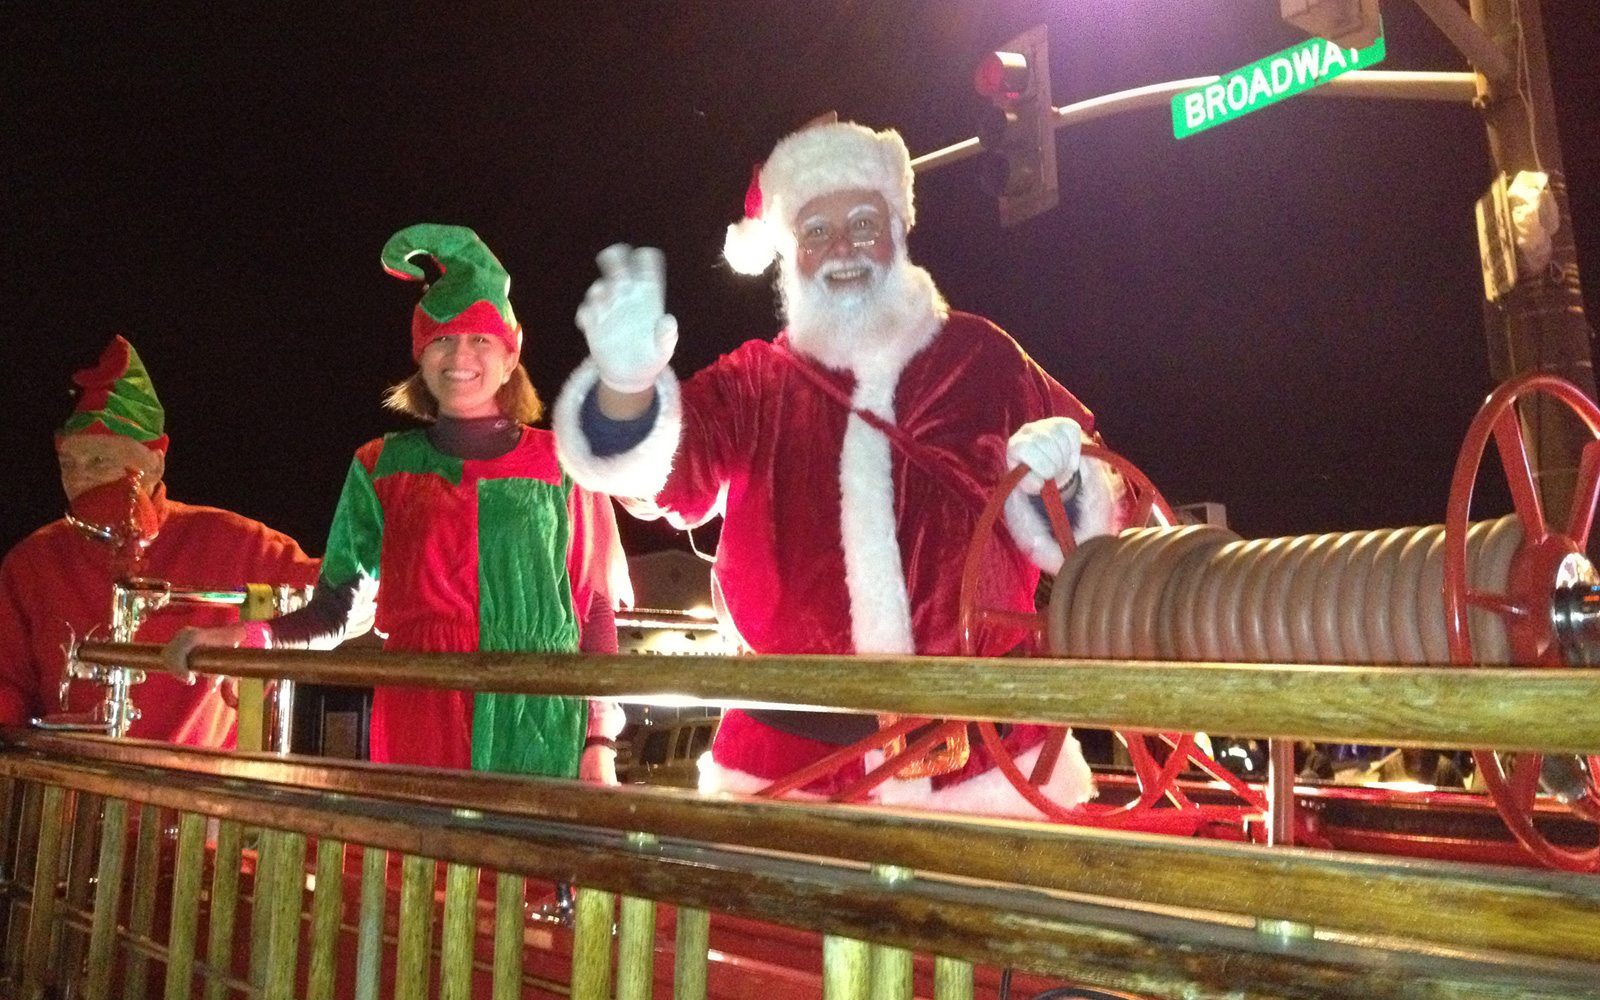 The Seaside Parade of Lights is one of many holiday festivities